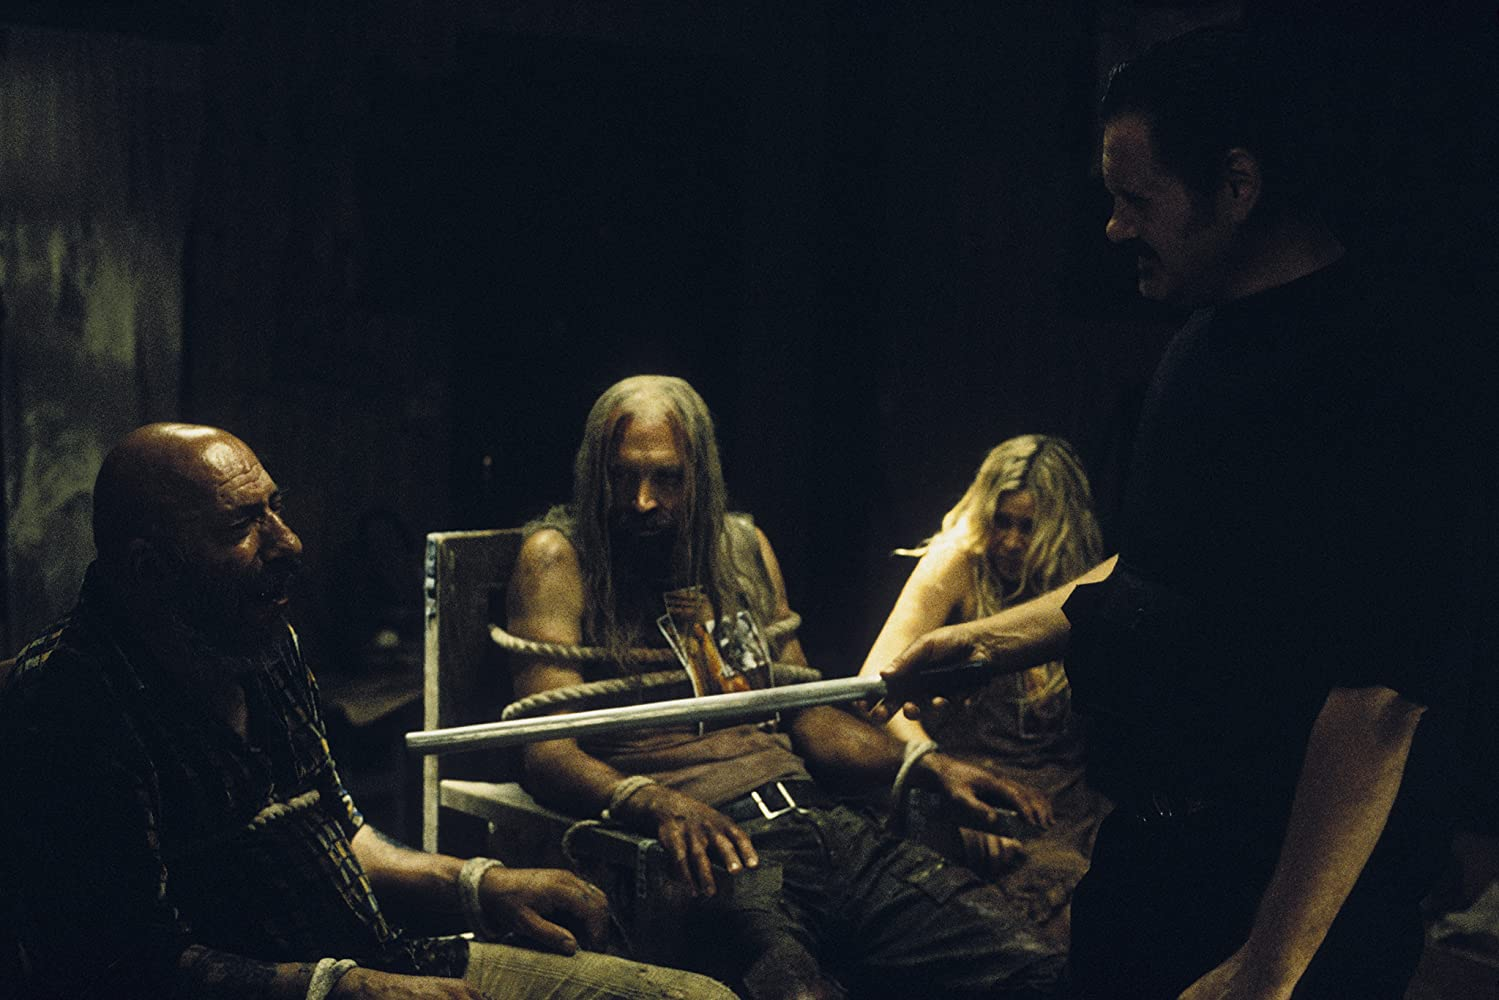 William Forsythe, Sid Haig, Sheri Moon Zombie, and Bill Moseley in The Devil's Rejects (2005)